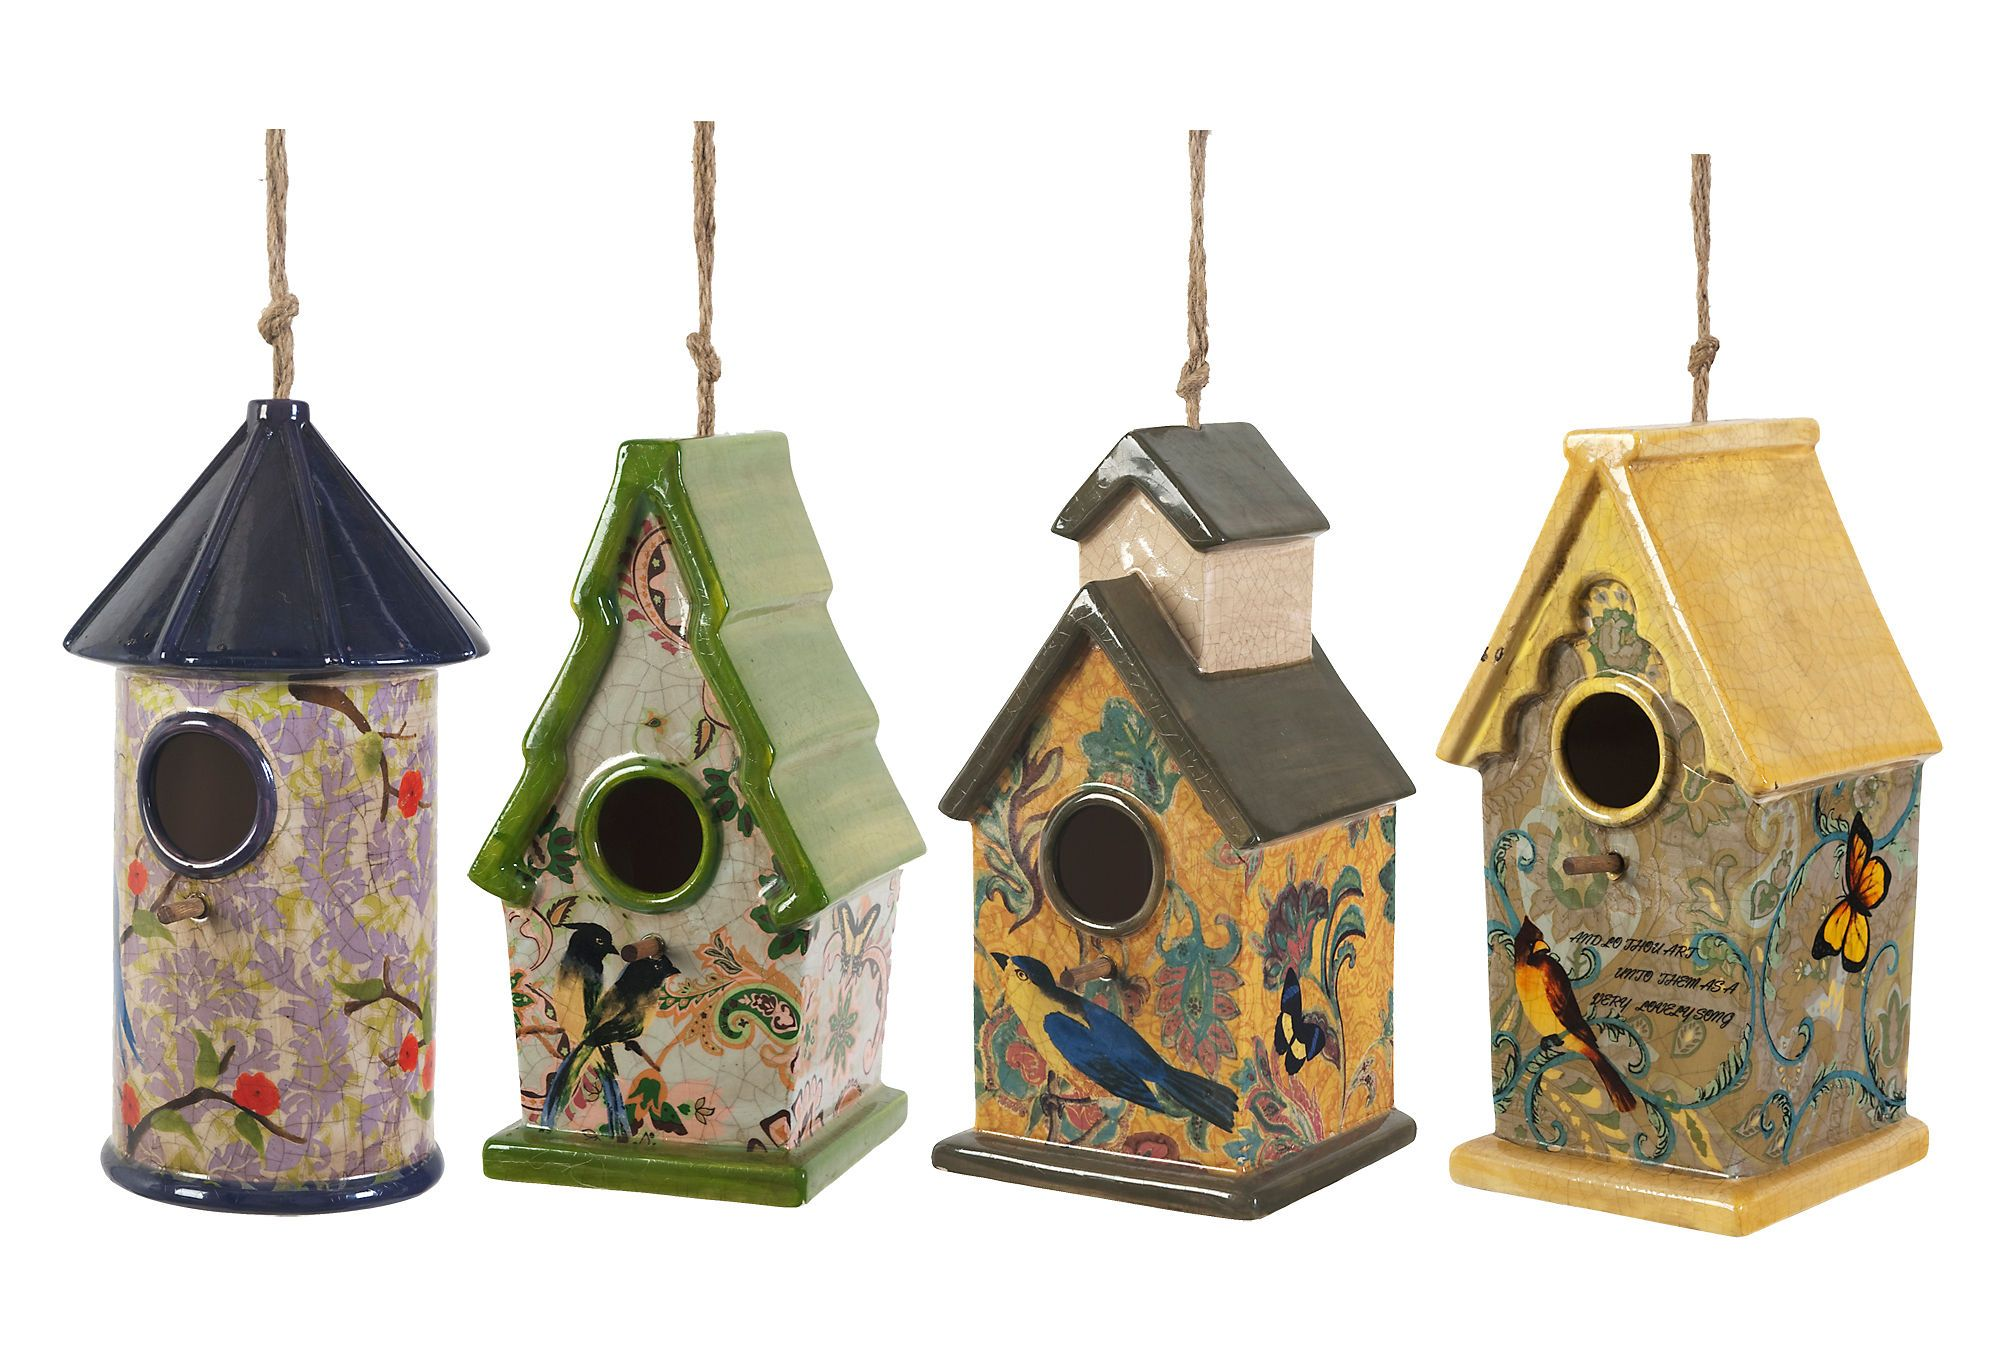 f5fd7bf333d12f1145bfaf6a4adf7fb3 - Better Homes And Gardens Bird House